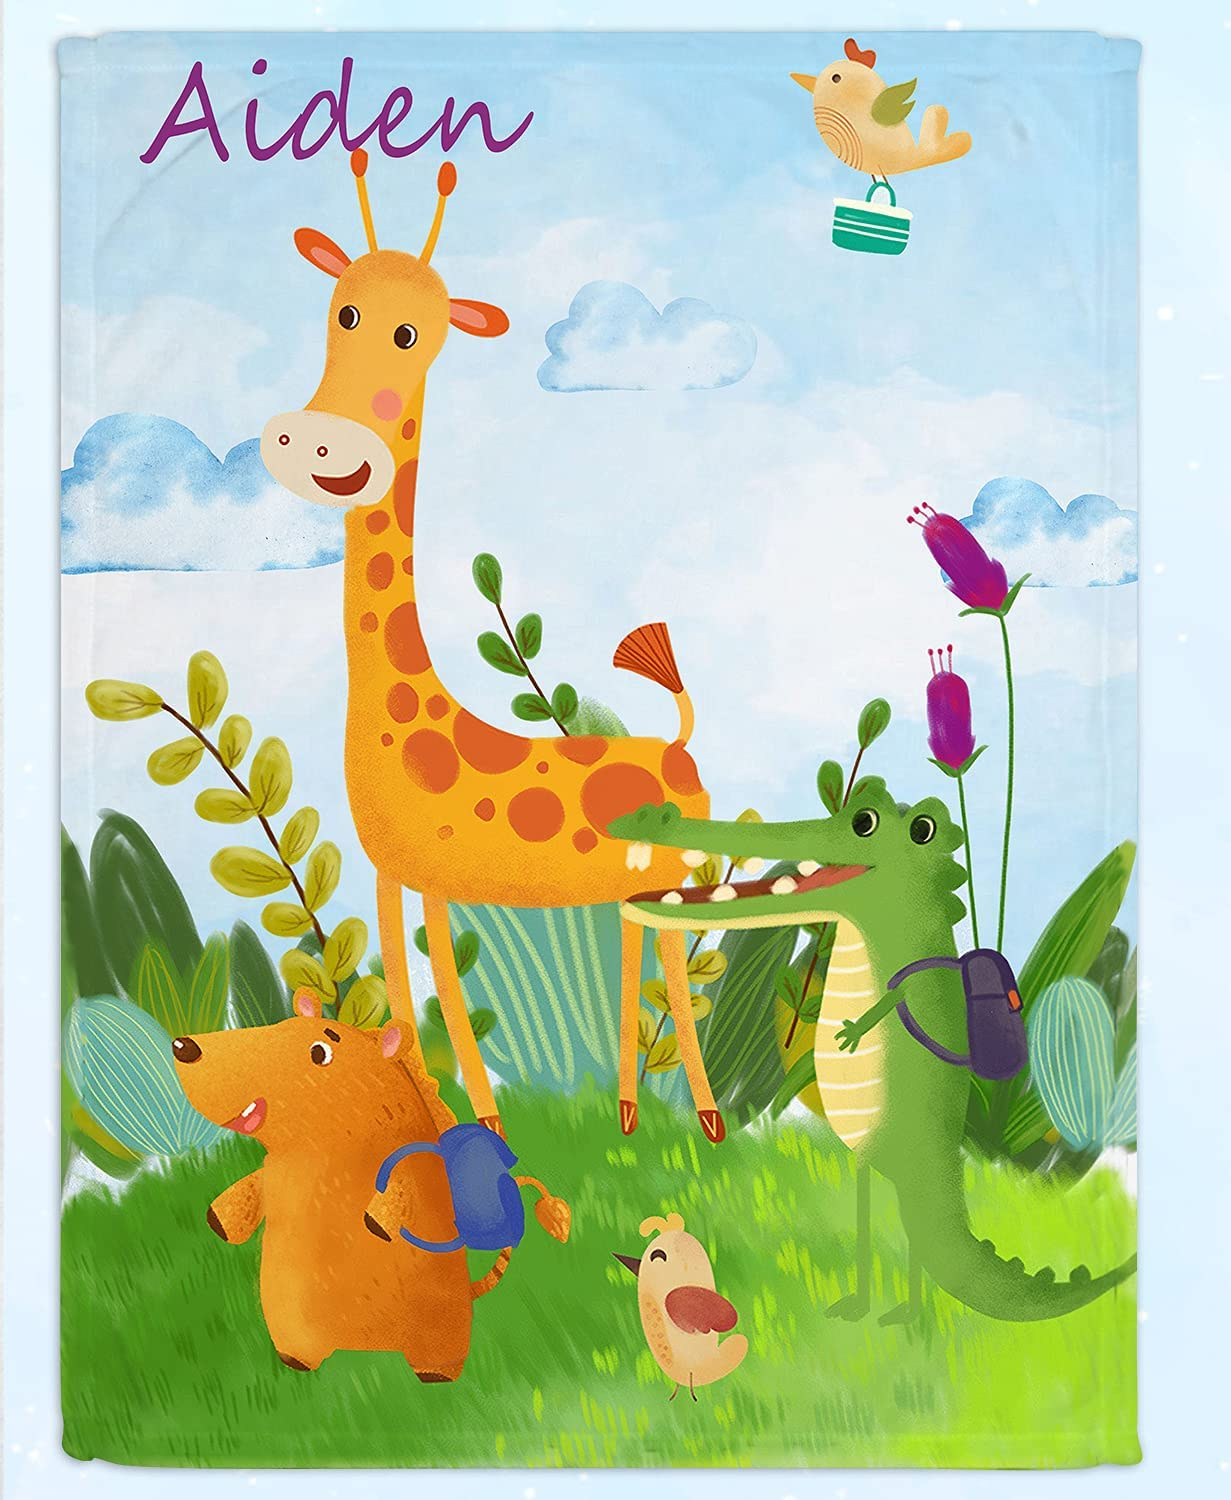 Personalized Blanket- Max 85% OFF Cartoon Aiden Baby Gi Name Blanket Free Shipping New Animal